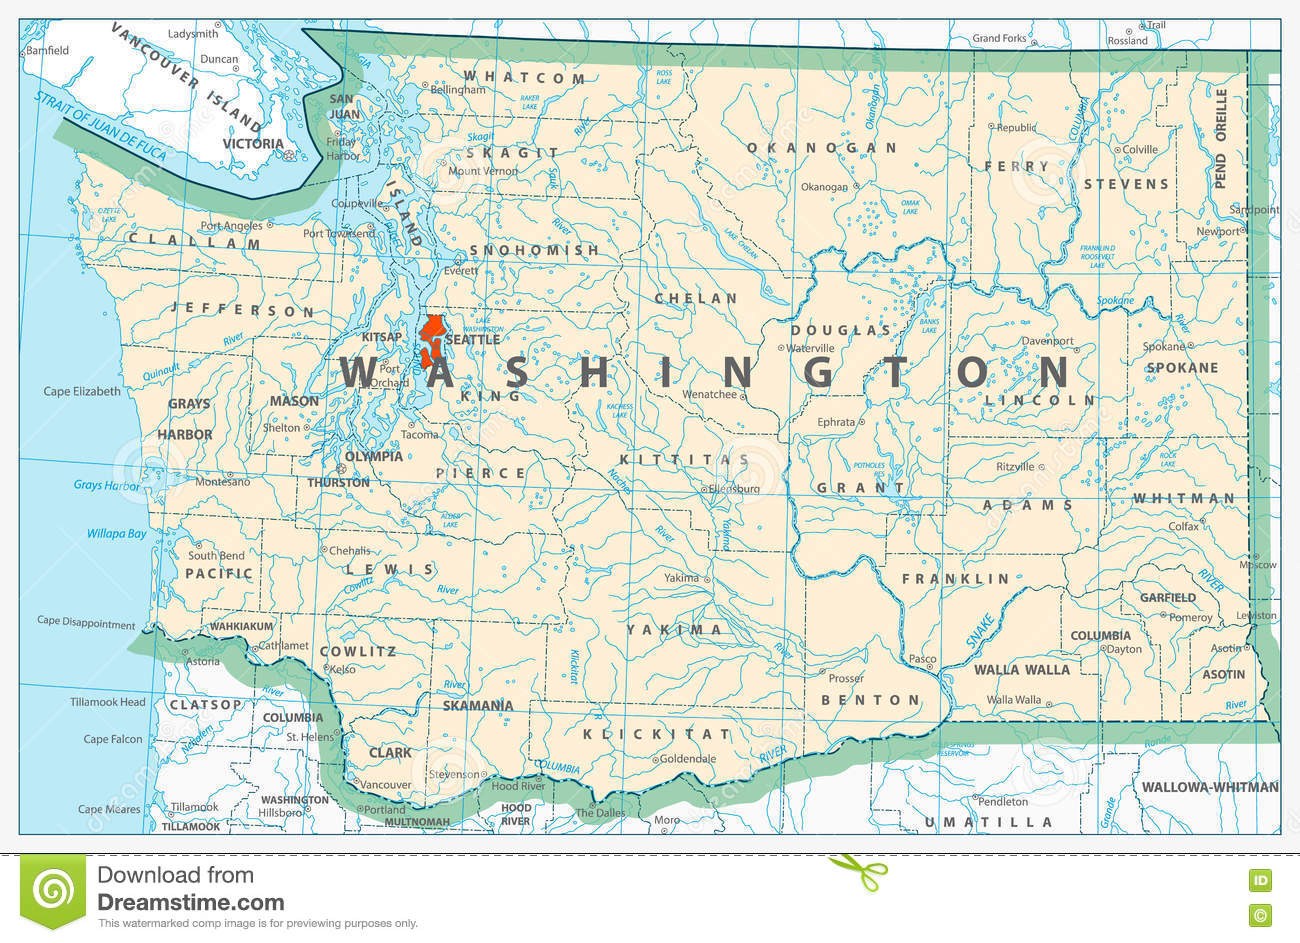 State Road Map Physical Map Of Washington WSDOT Freight - Map of washington cities